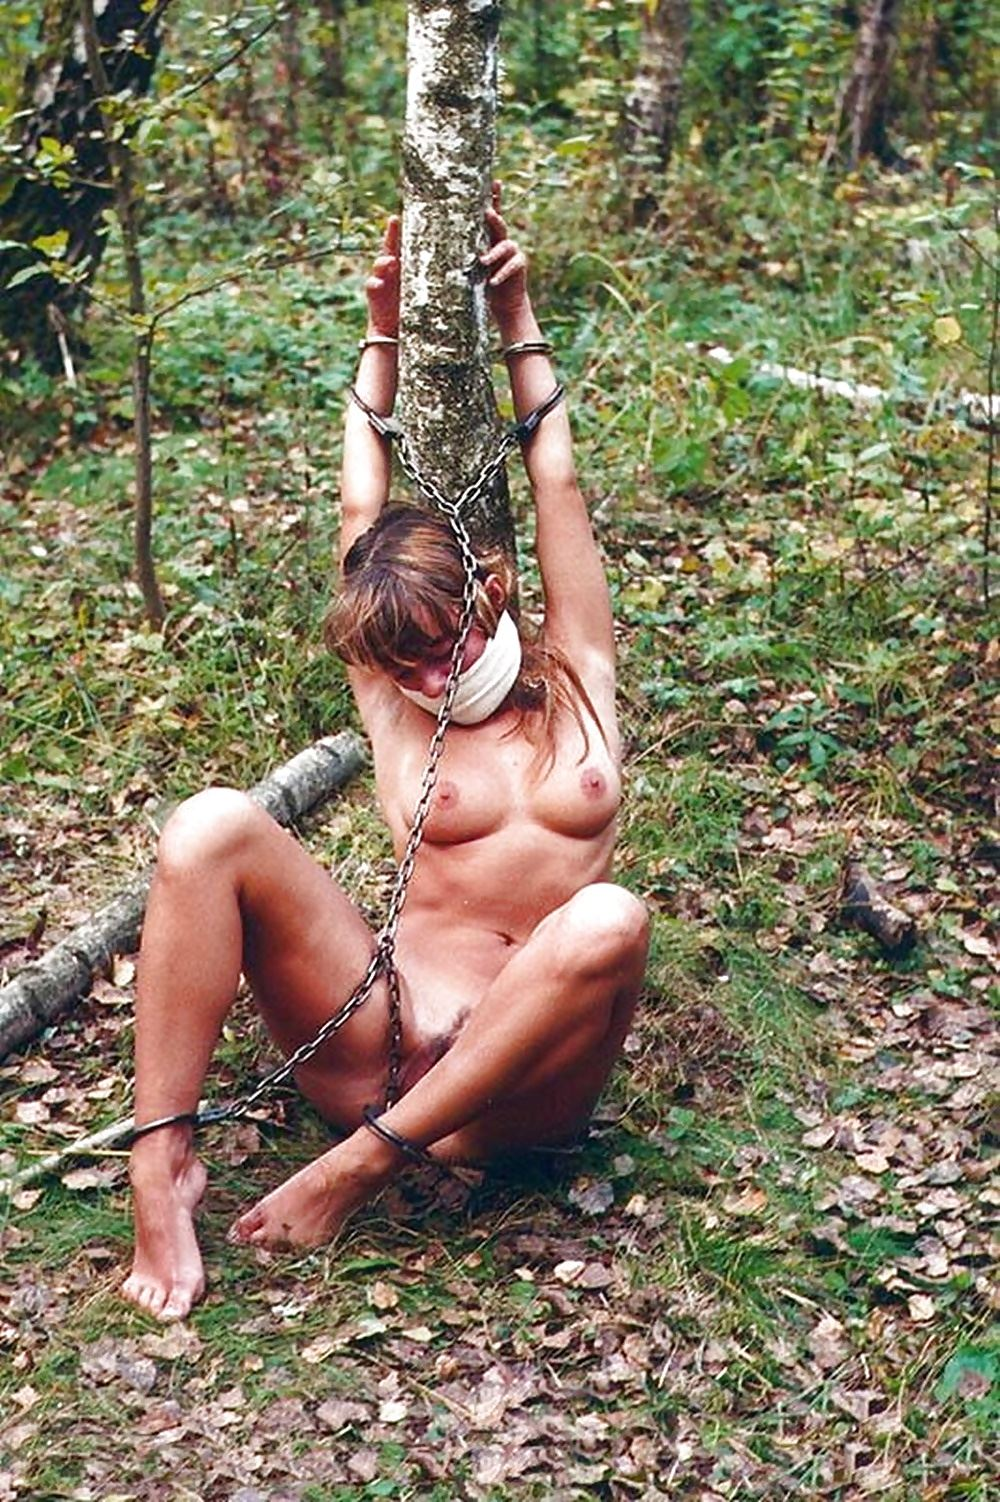 bdsm-camping-ground-model-girl-fucked